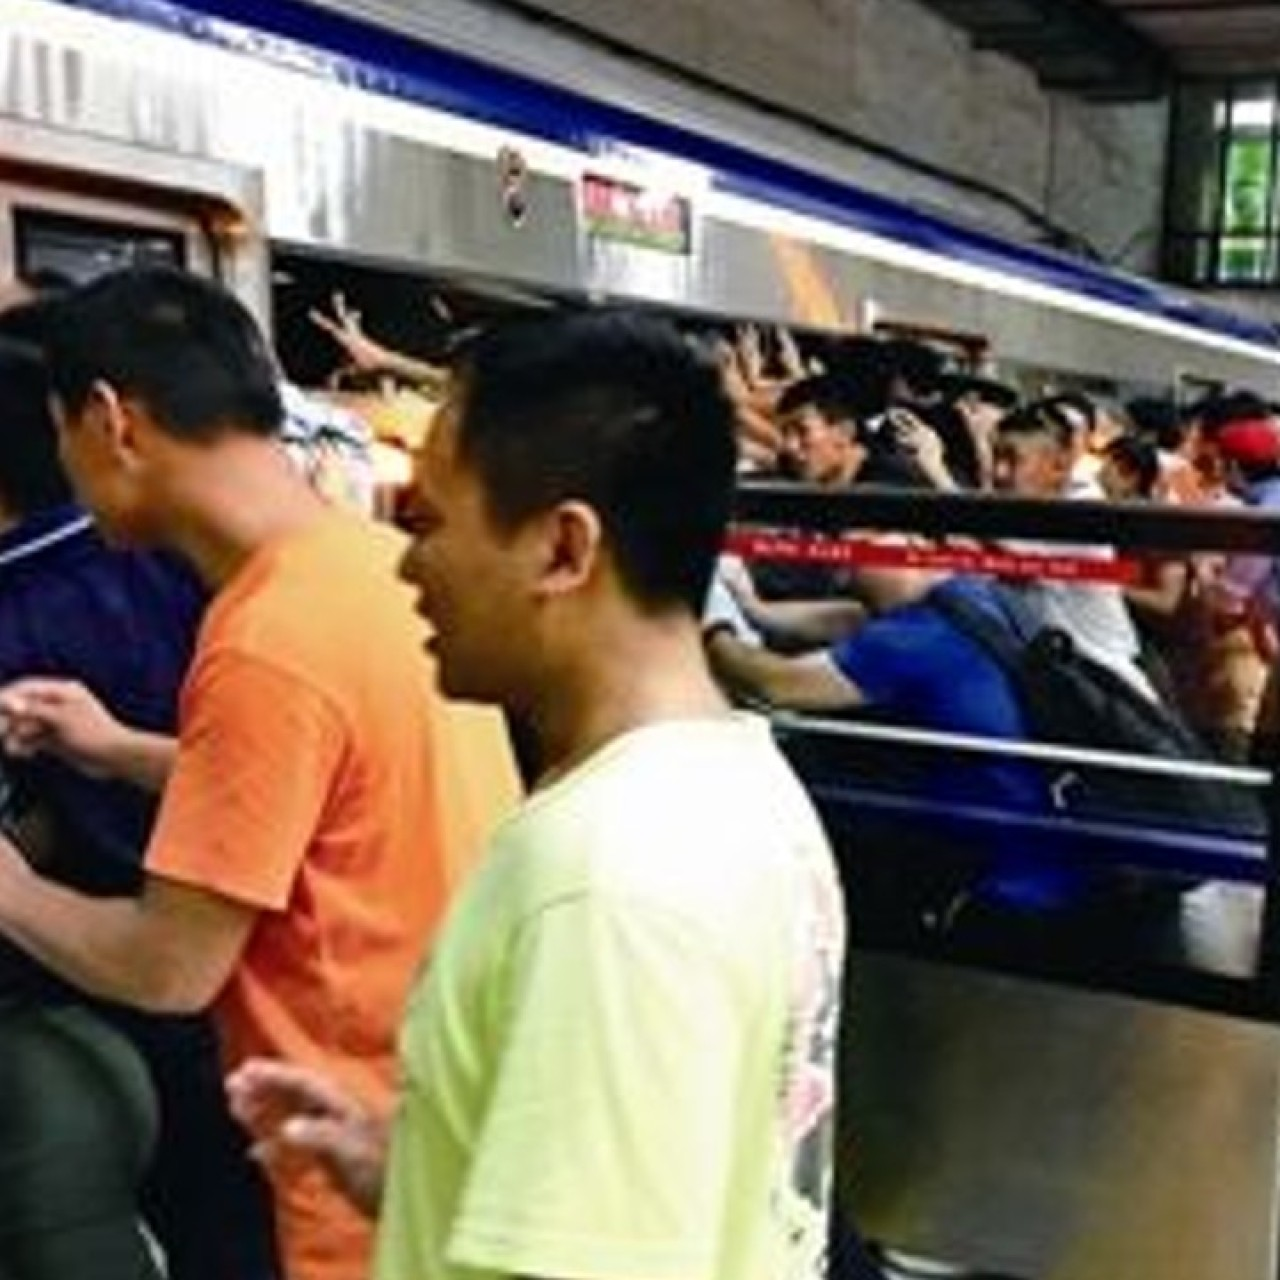 People power saves Chinese man crushed between subway train